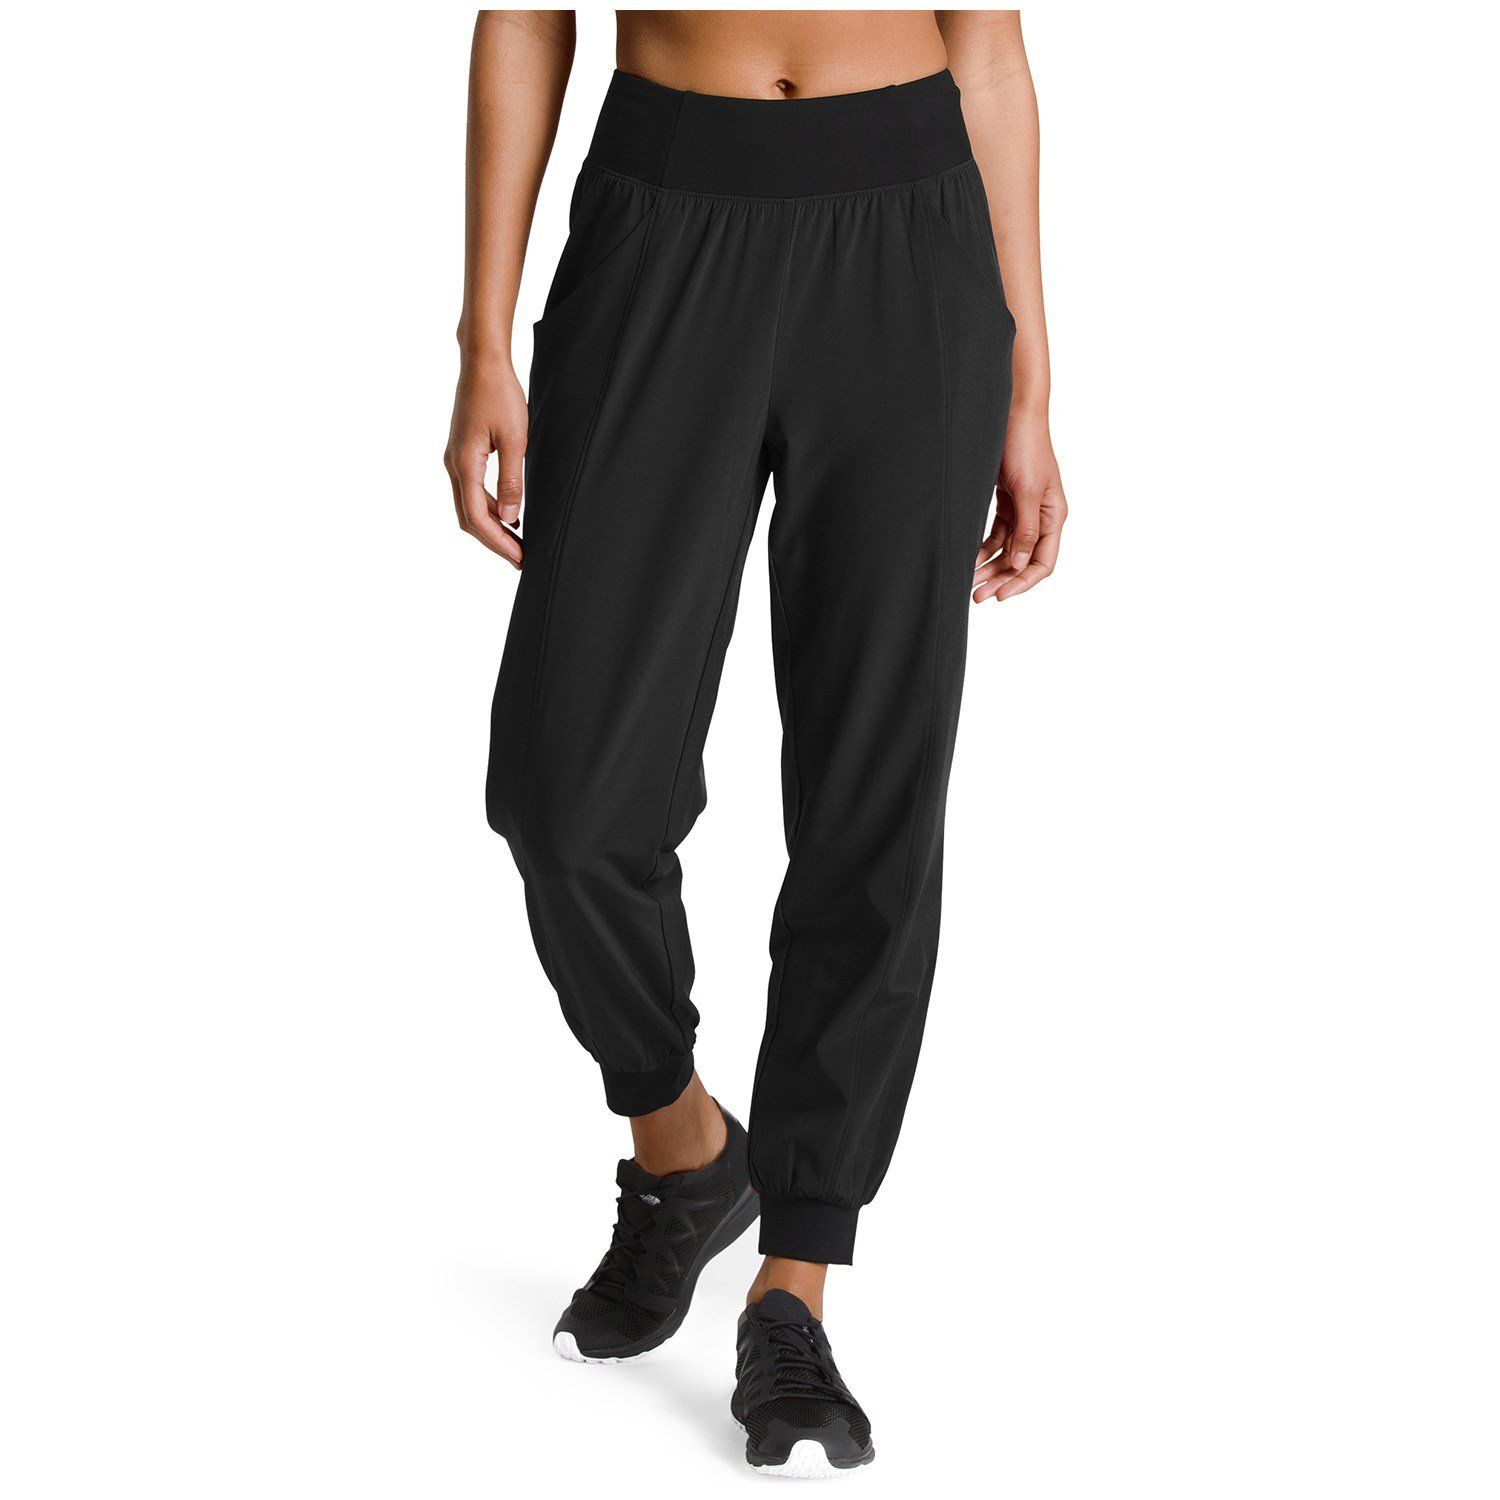 a58337340 The North Face Arise and Align Mid-Rise Pants - Women's